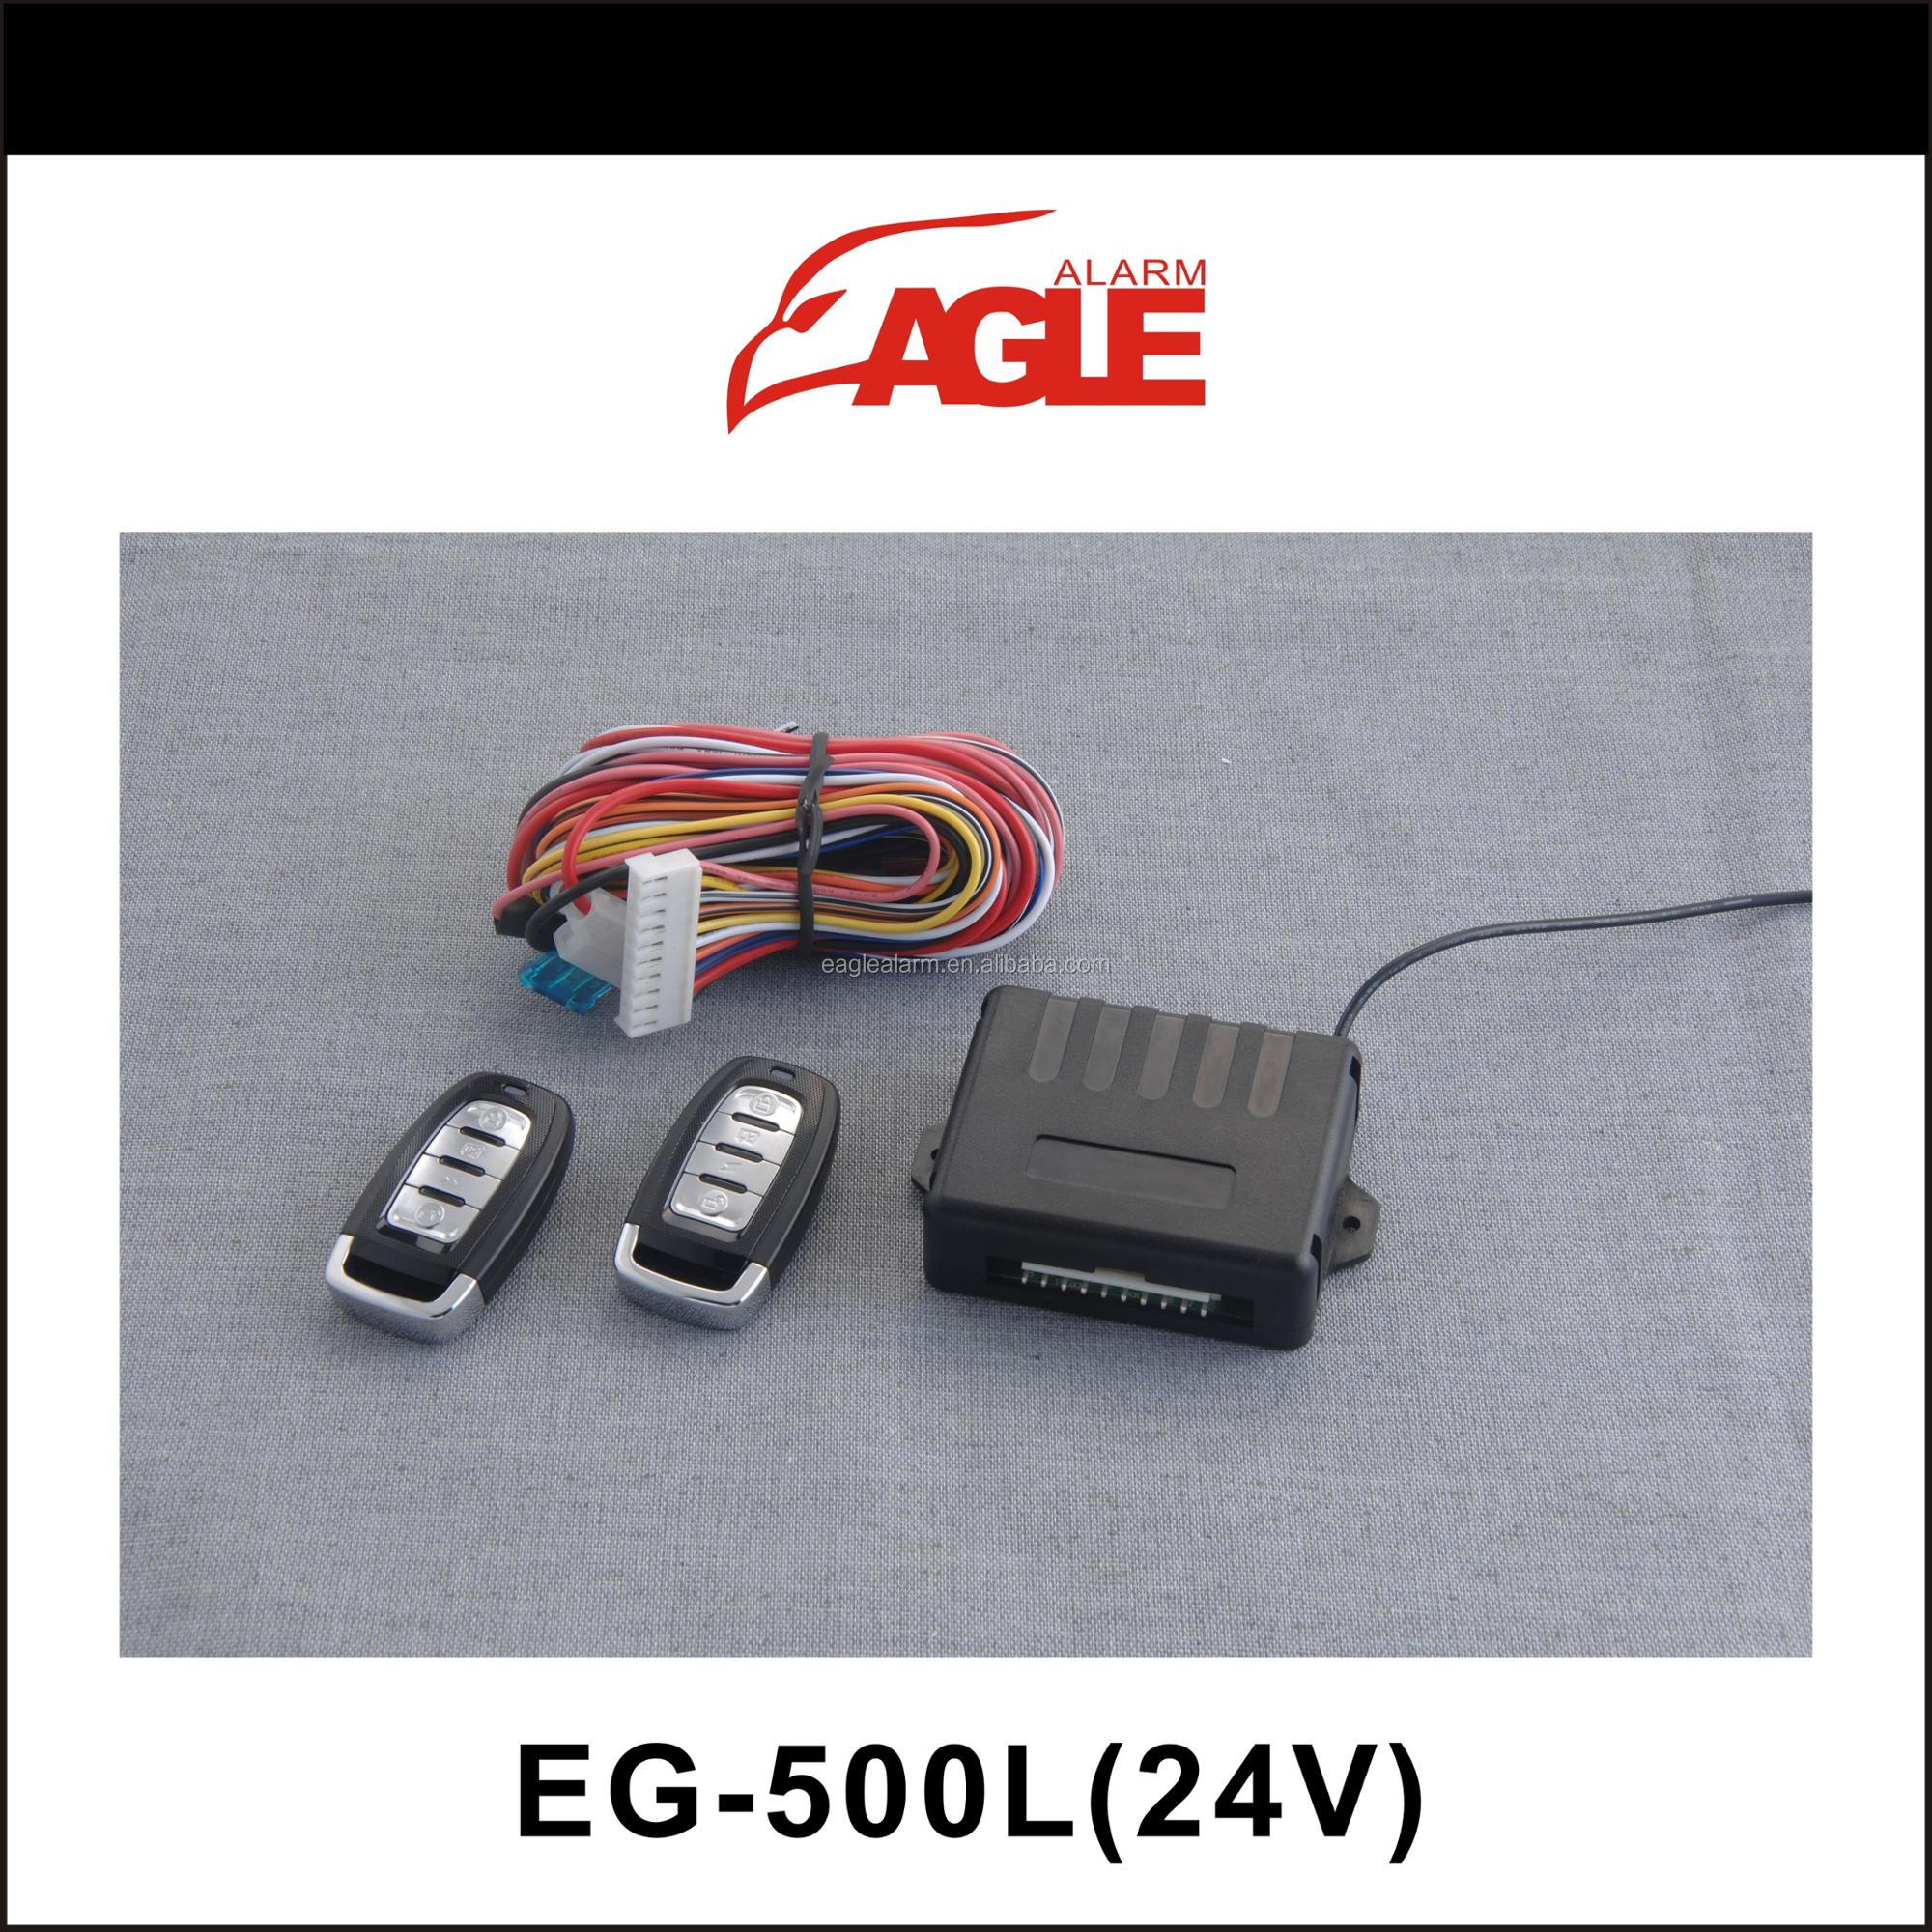 Passive Keyless Entry, Passive Keyless Entry Suppliers and ...